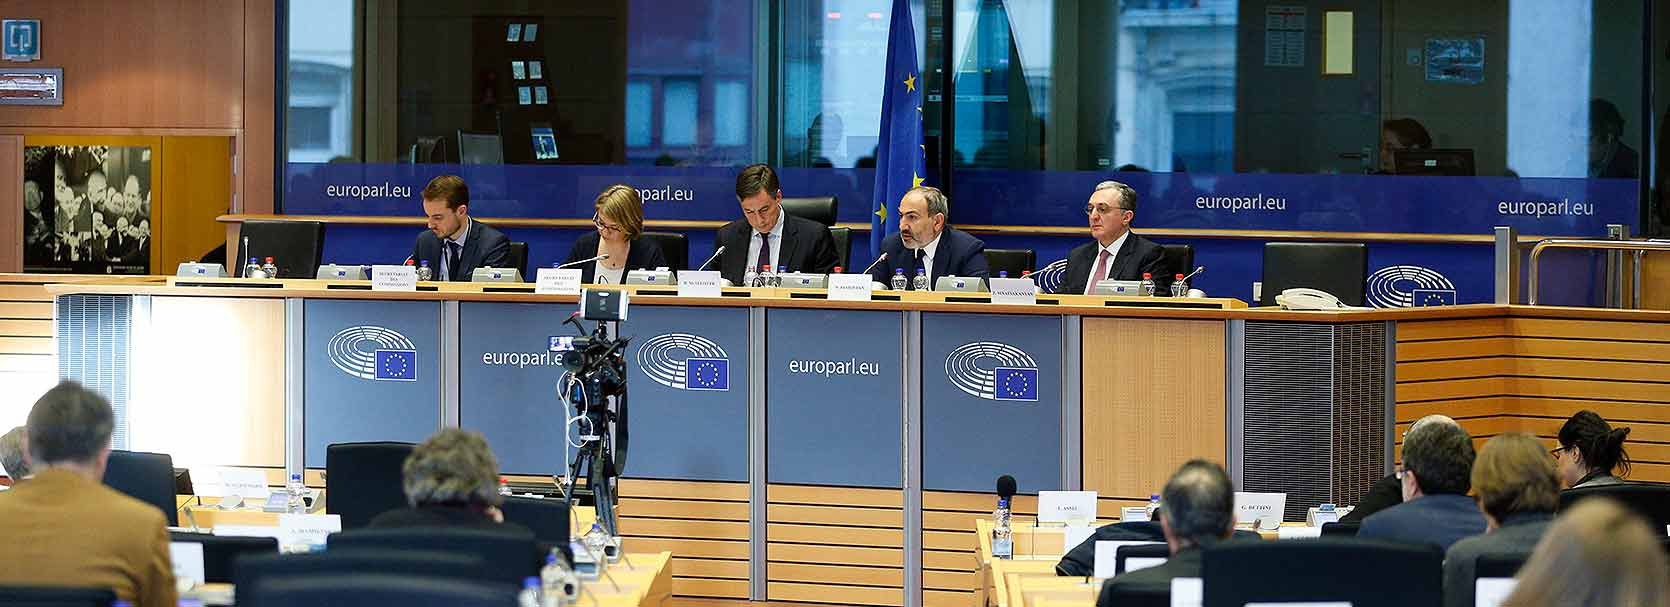 A New Start for the EU and Armenia: Nikol Pashinyan's March 2019 visit to the EU